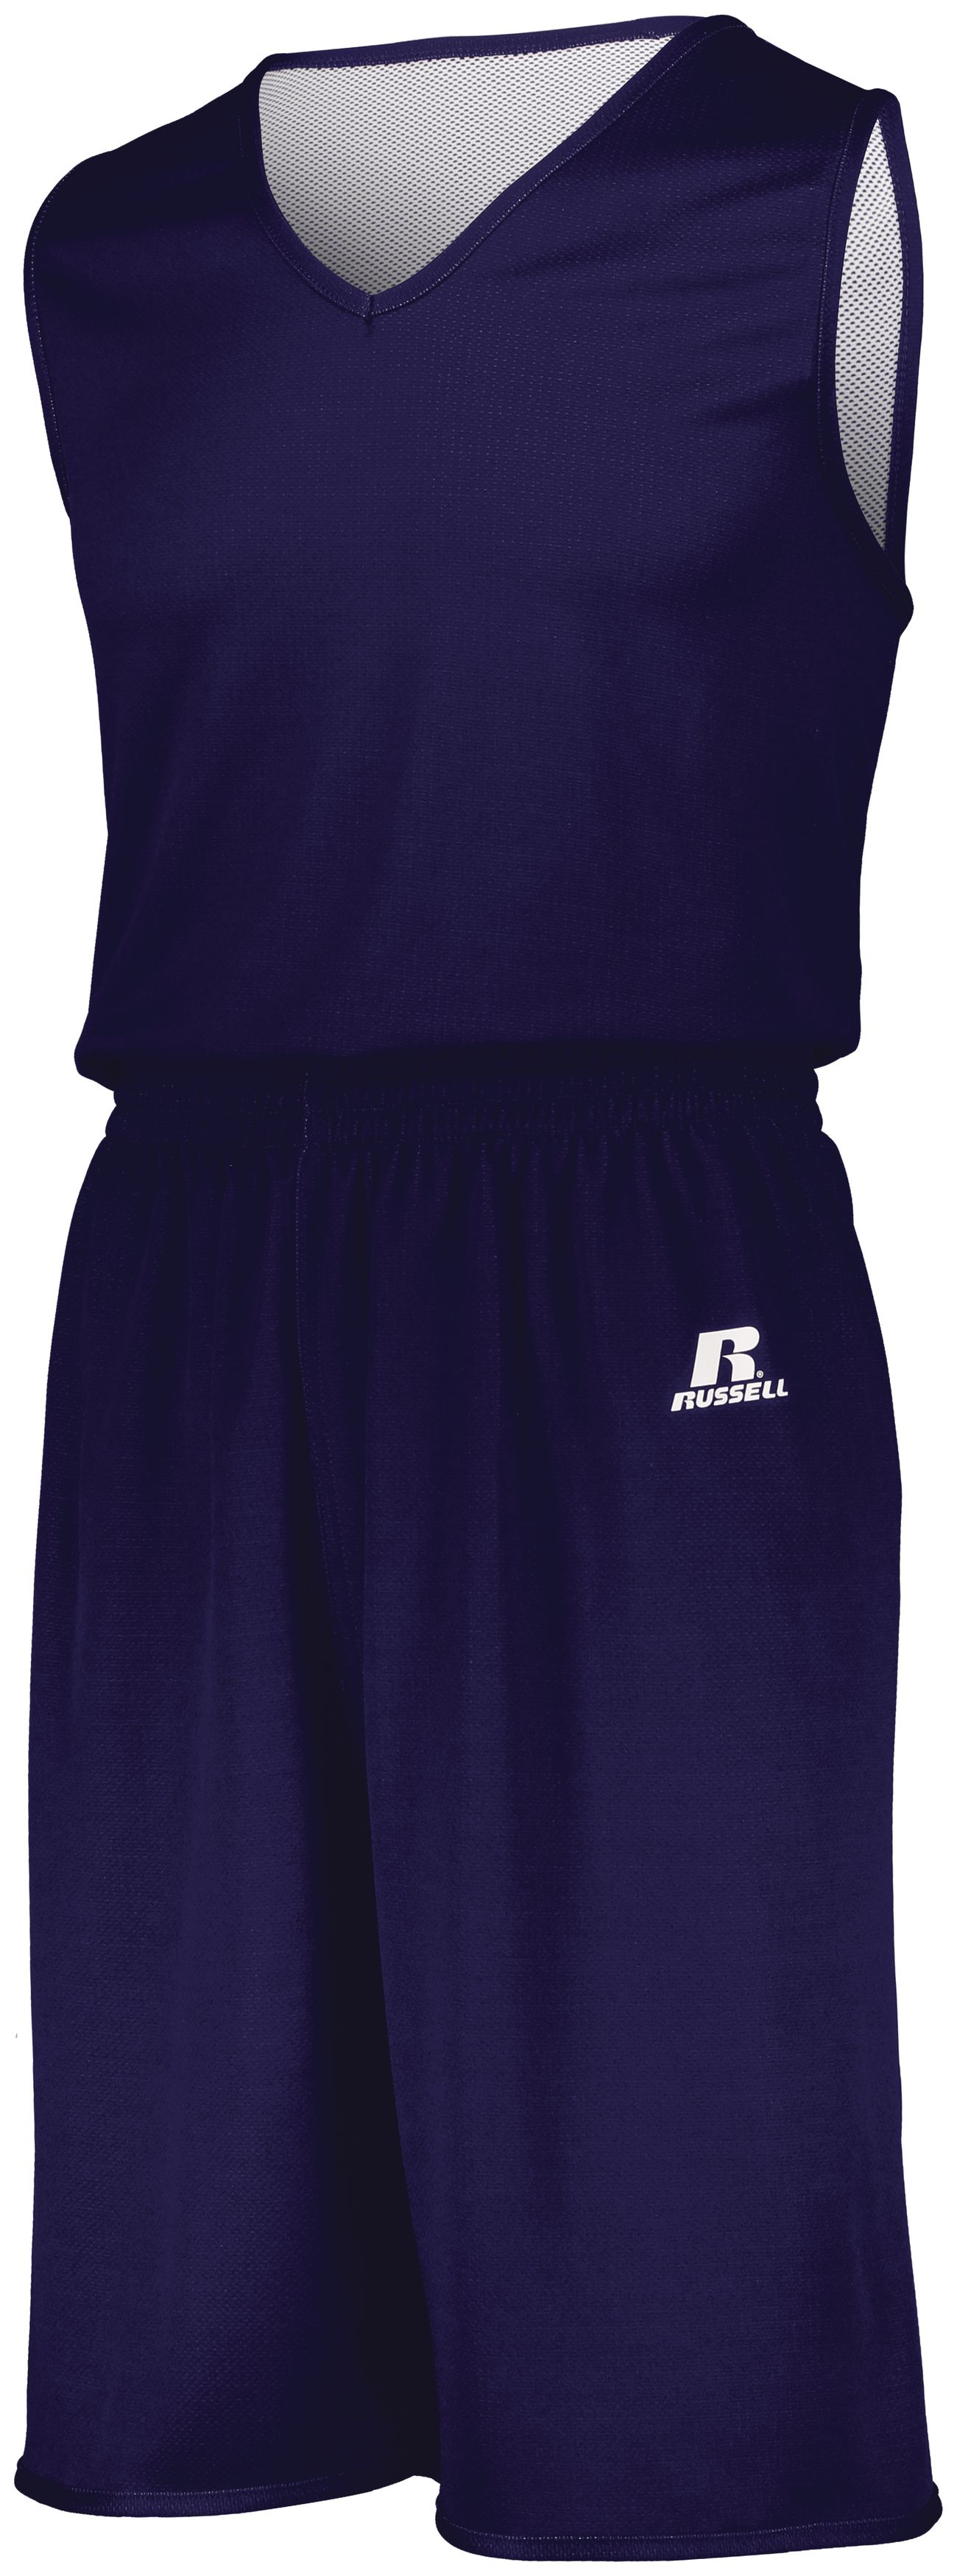 Youth Undivided Solid Single Ply Reversible Shorts - PURPLE/WHITE